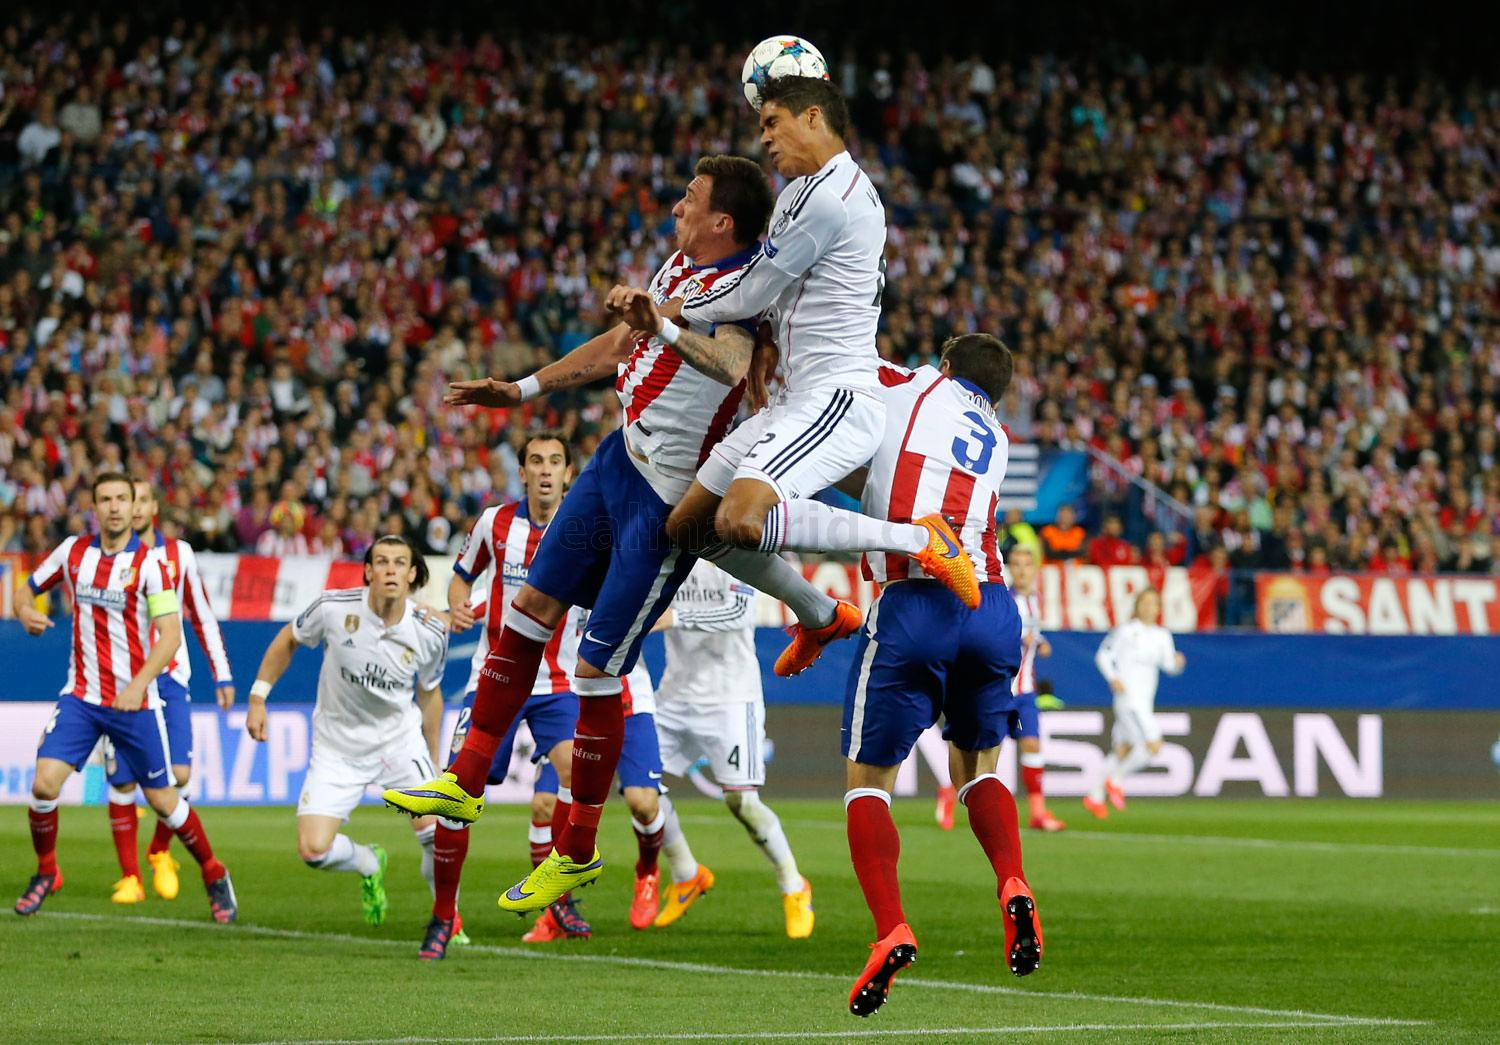 atletico-0-real-madrid-0-empate-champions-